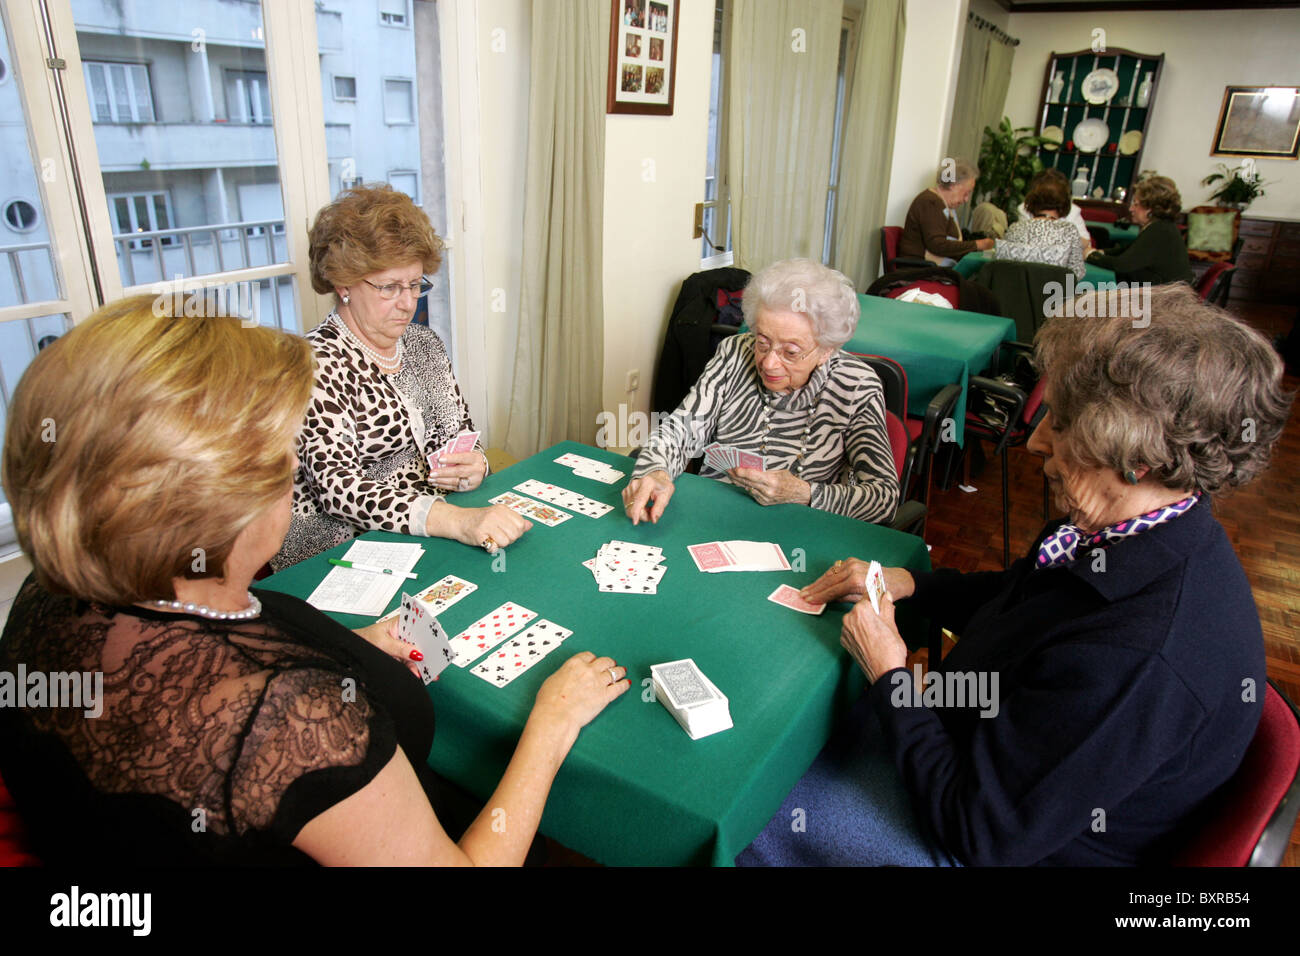 Gambling ladies